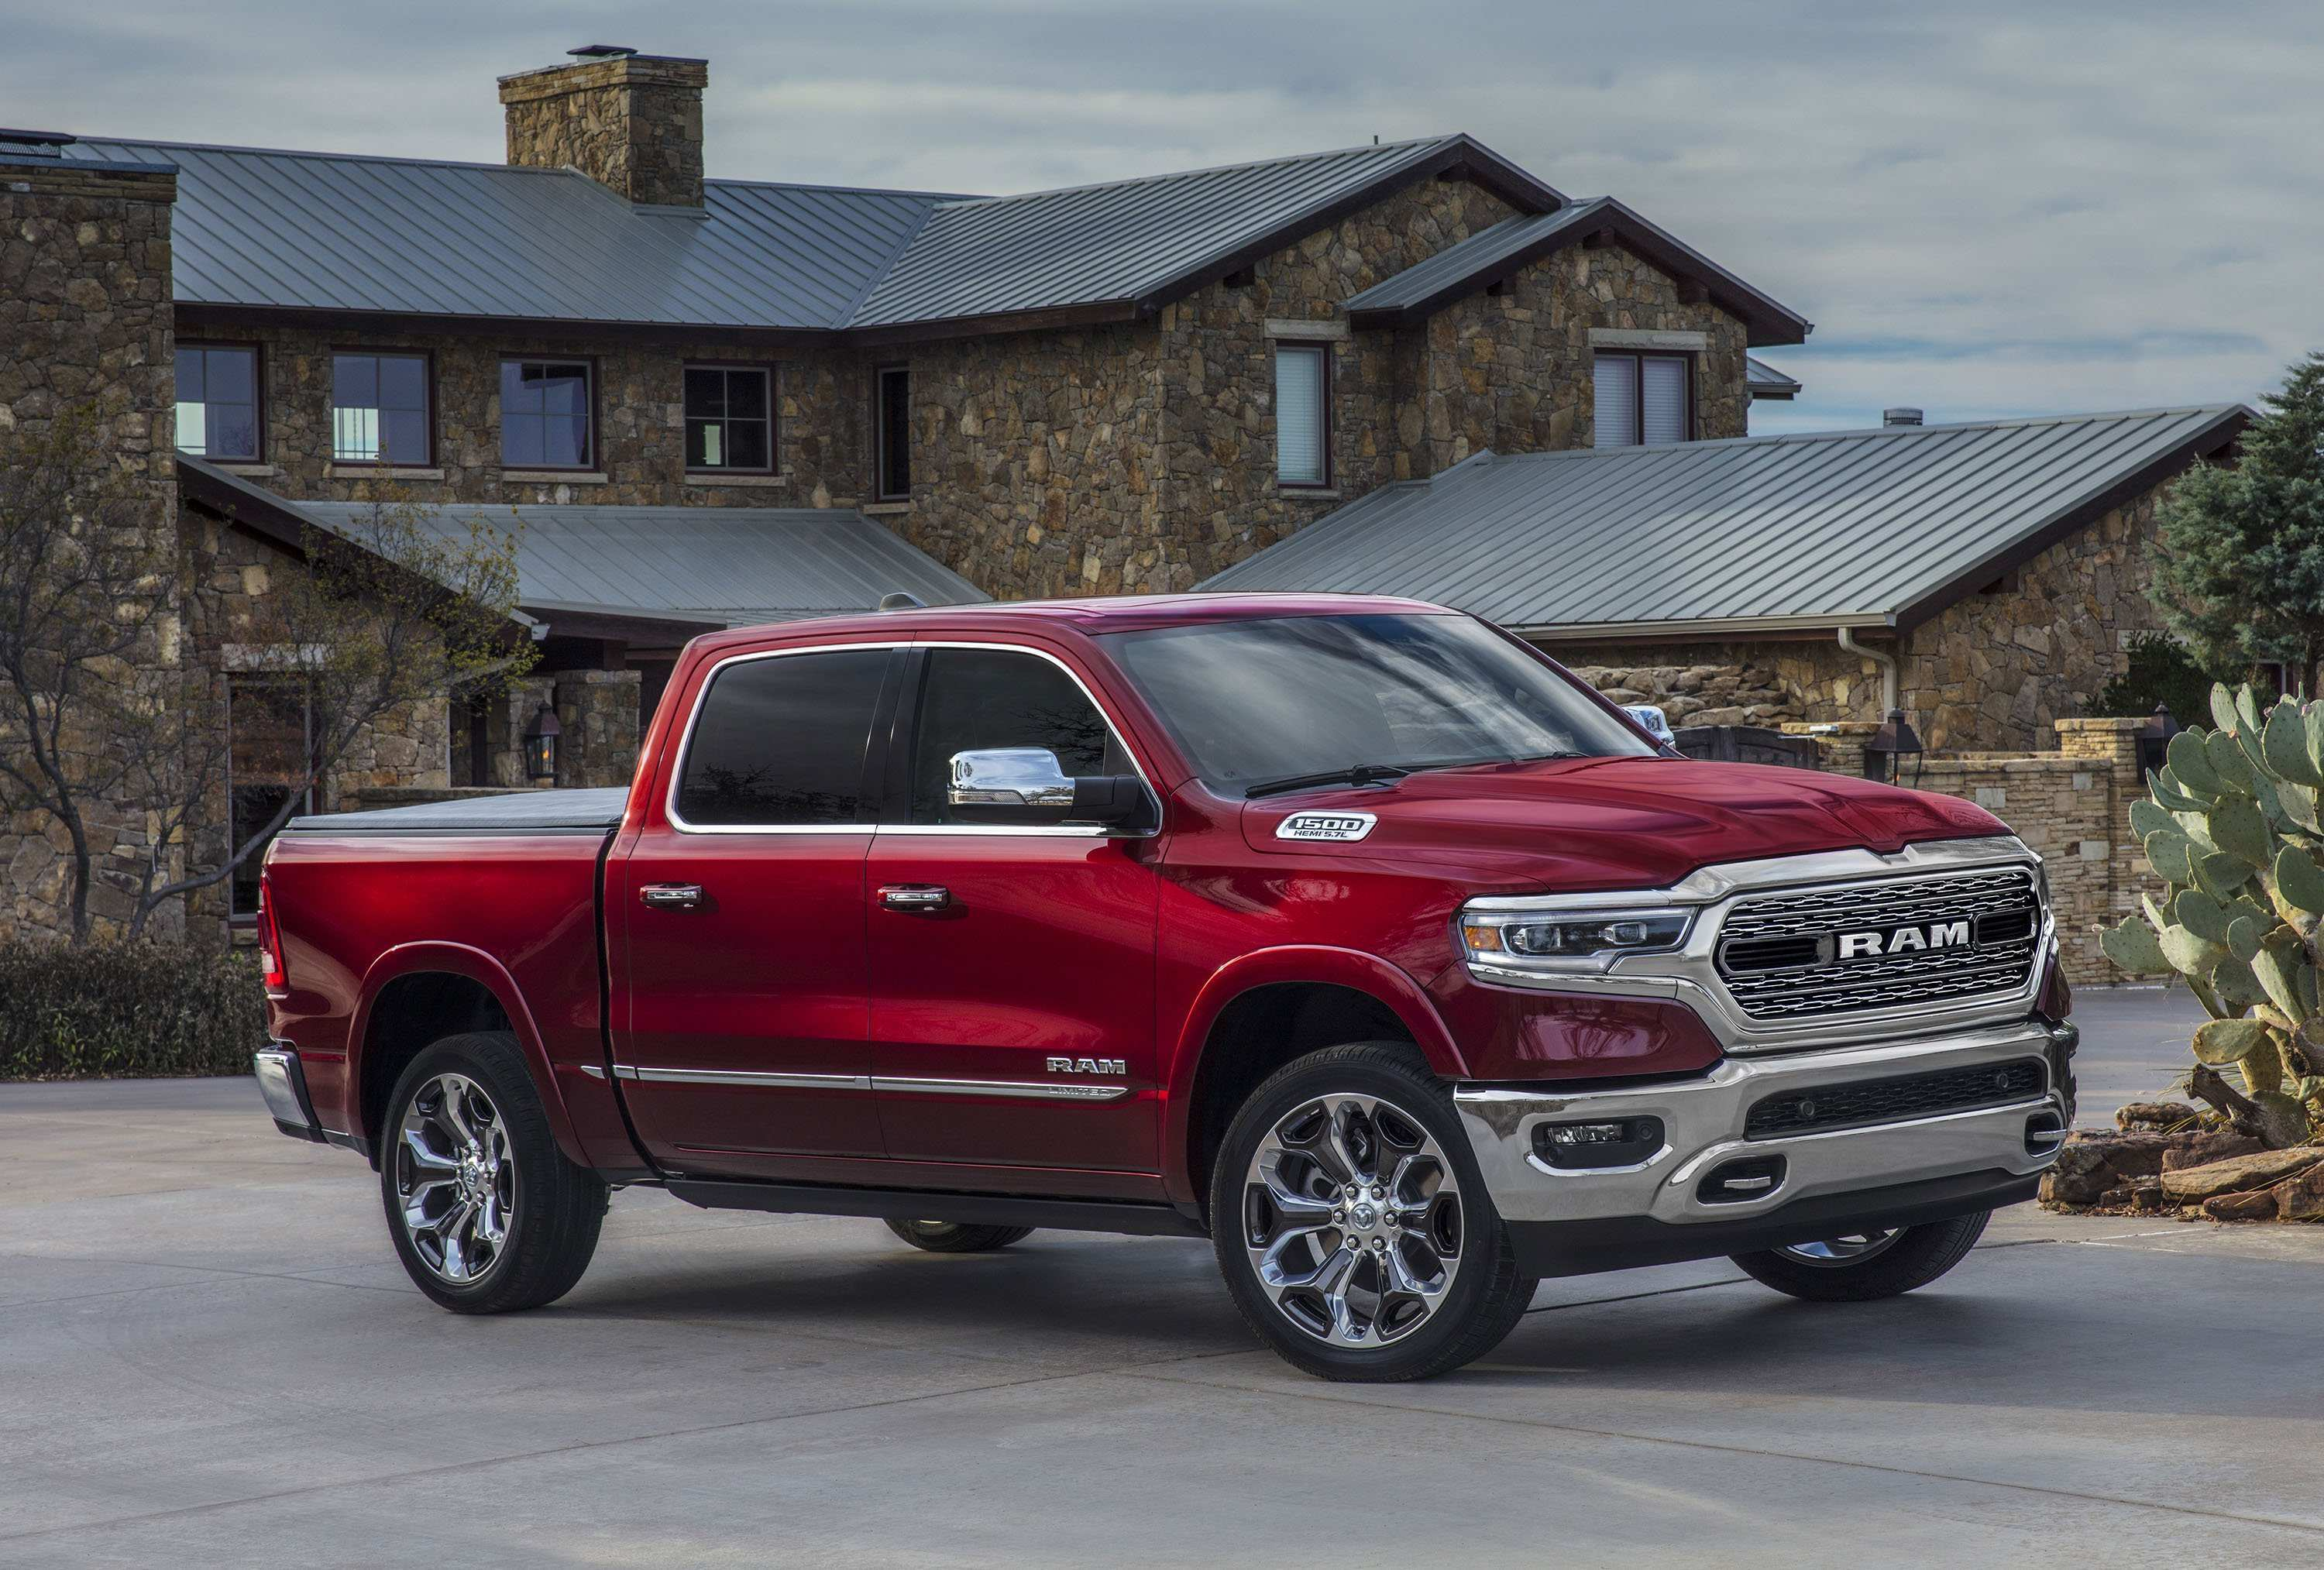 68 The Best Dodge Laramie 2019 Concept Overview for Best Dodge Laramie 2019 Concept